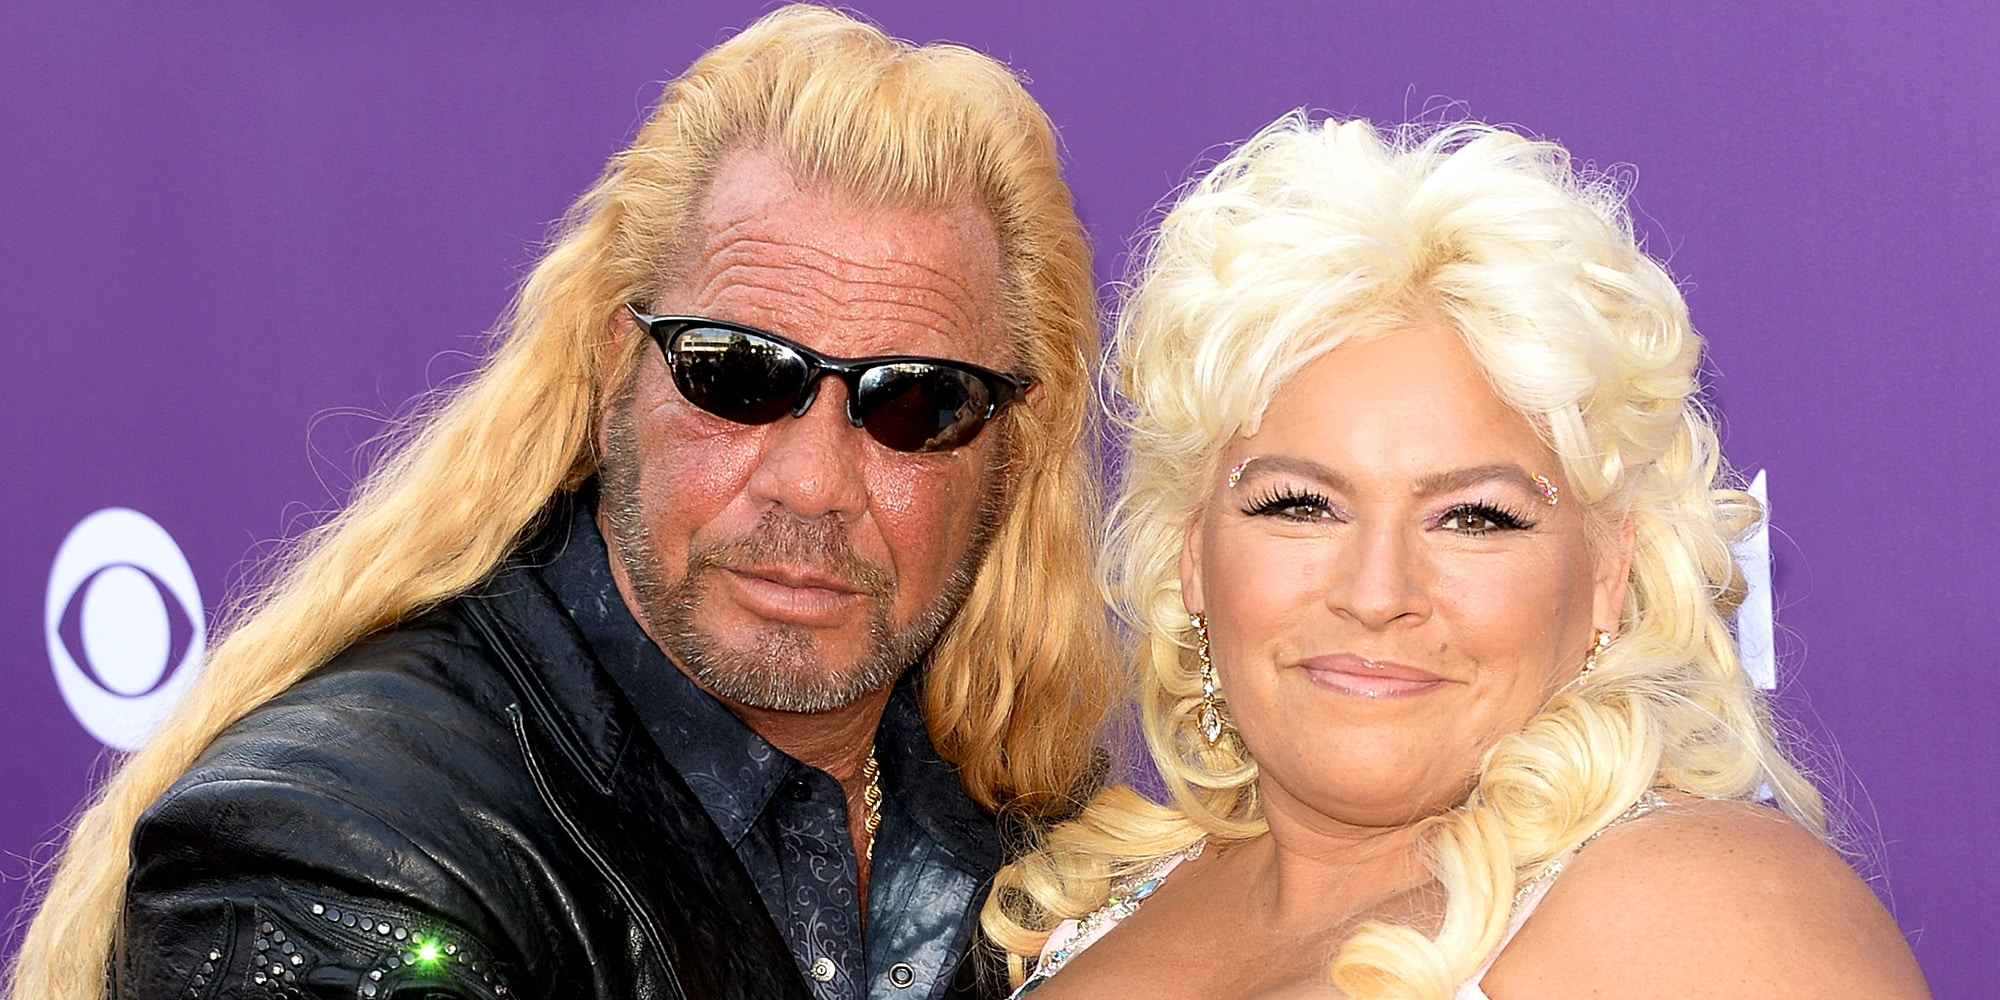 beth chapman net worth salary income assets in 2018